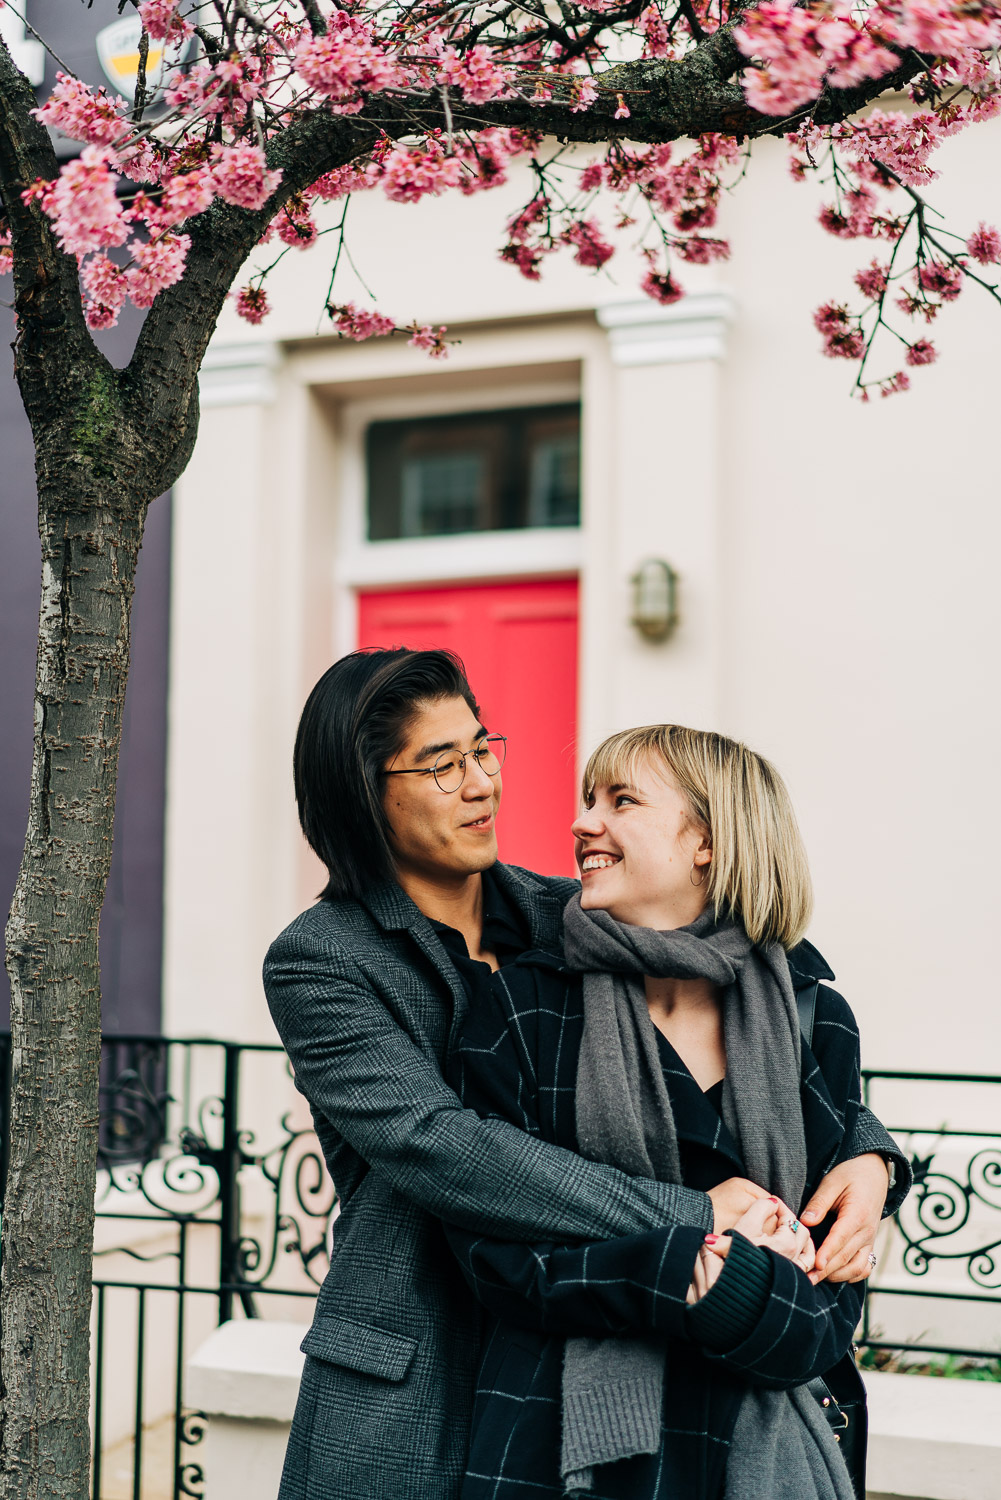 Couples portrait photography in Notting Hill, London